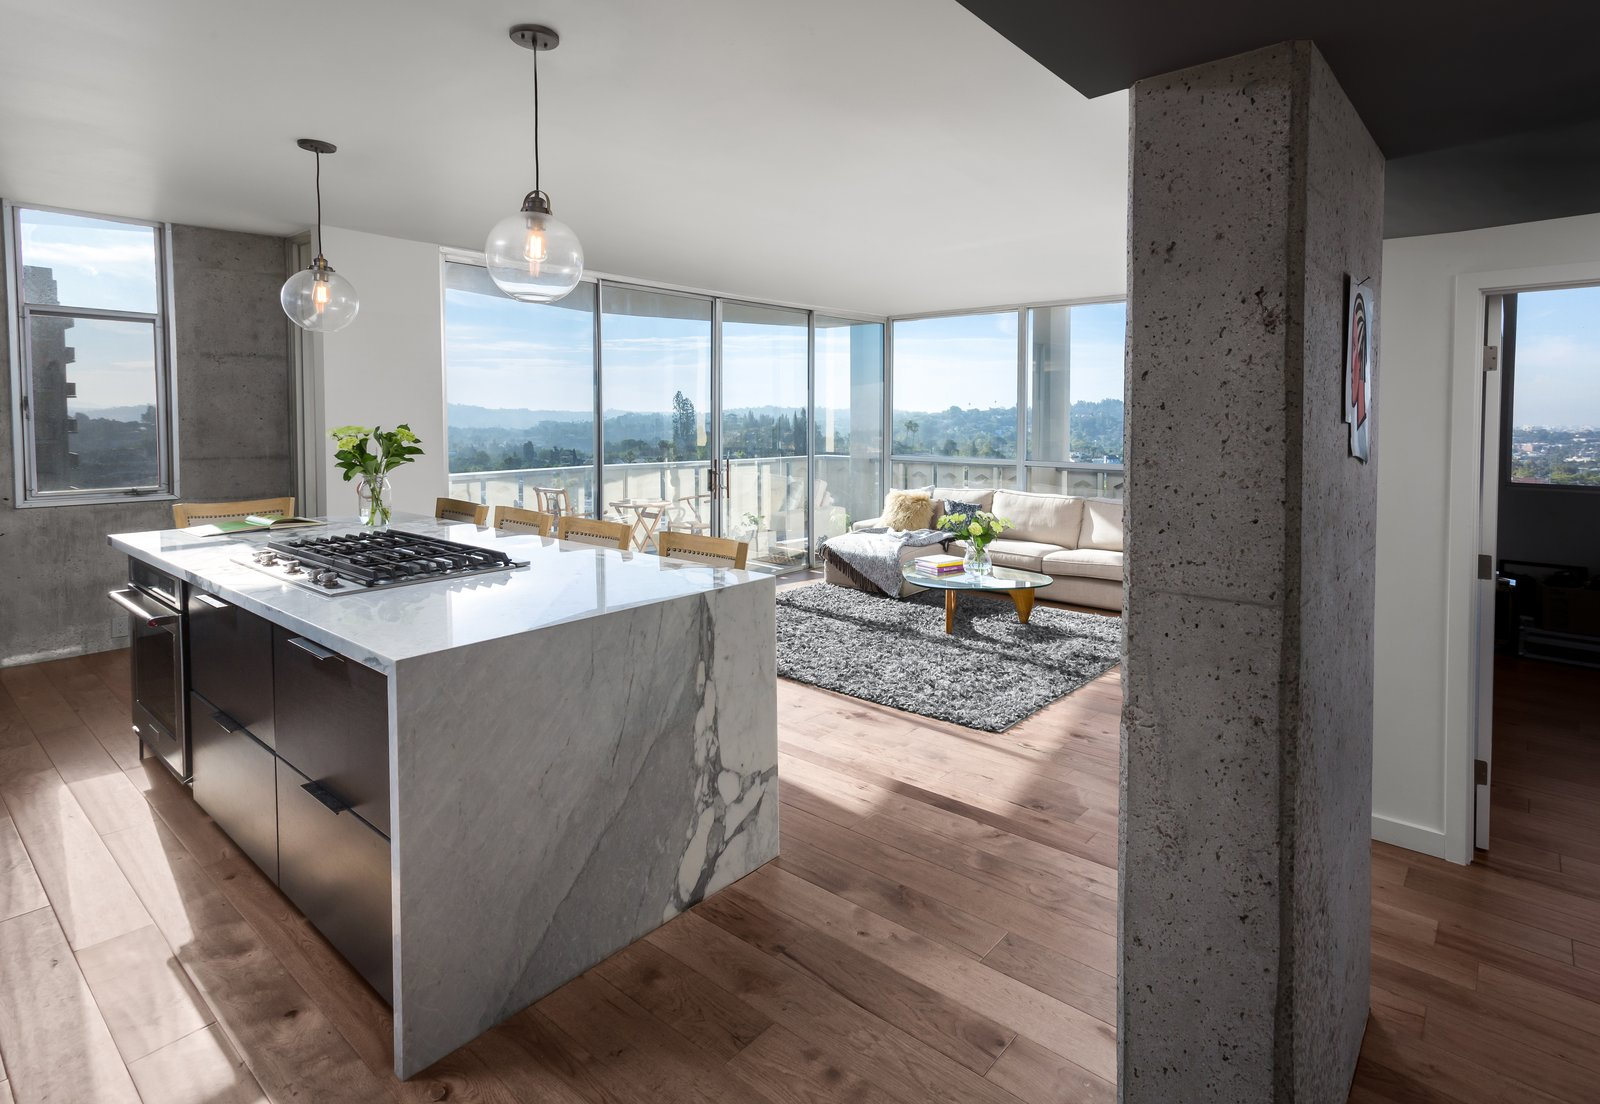 Kitchen, Marble, Wood, Marble, Medium Hardwood, Pendant, Refrigerator, Wall Oven, Cooktops, Dishwasher, and Undermount Kitchen island, Living Room and Study from entry with panoramic views of Los Angeles beyond  Best Kitchen Cooktops Marble Medium Hardwood Marble Photos from LFT Residence